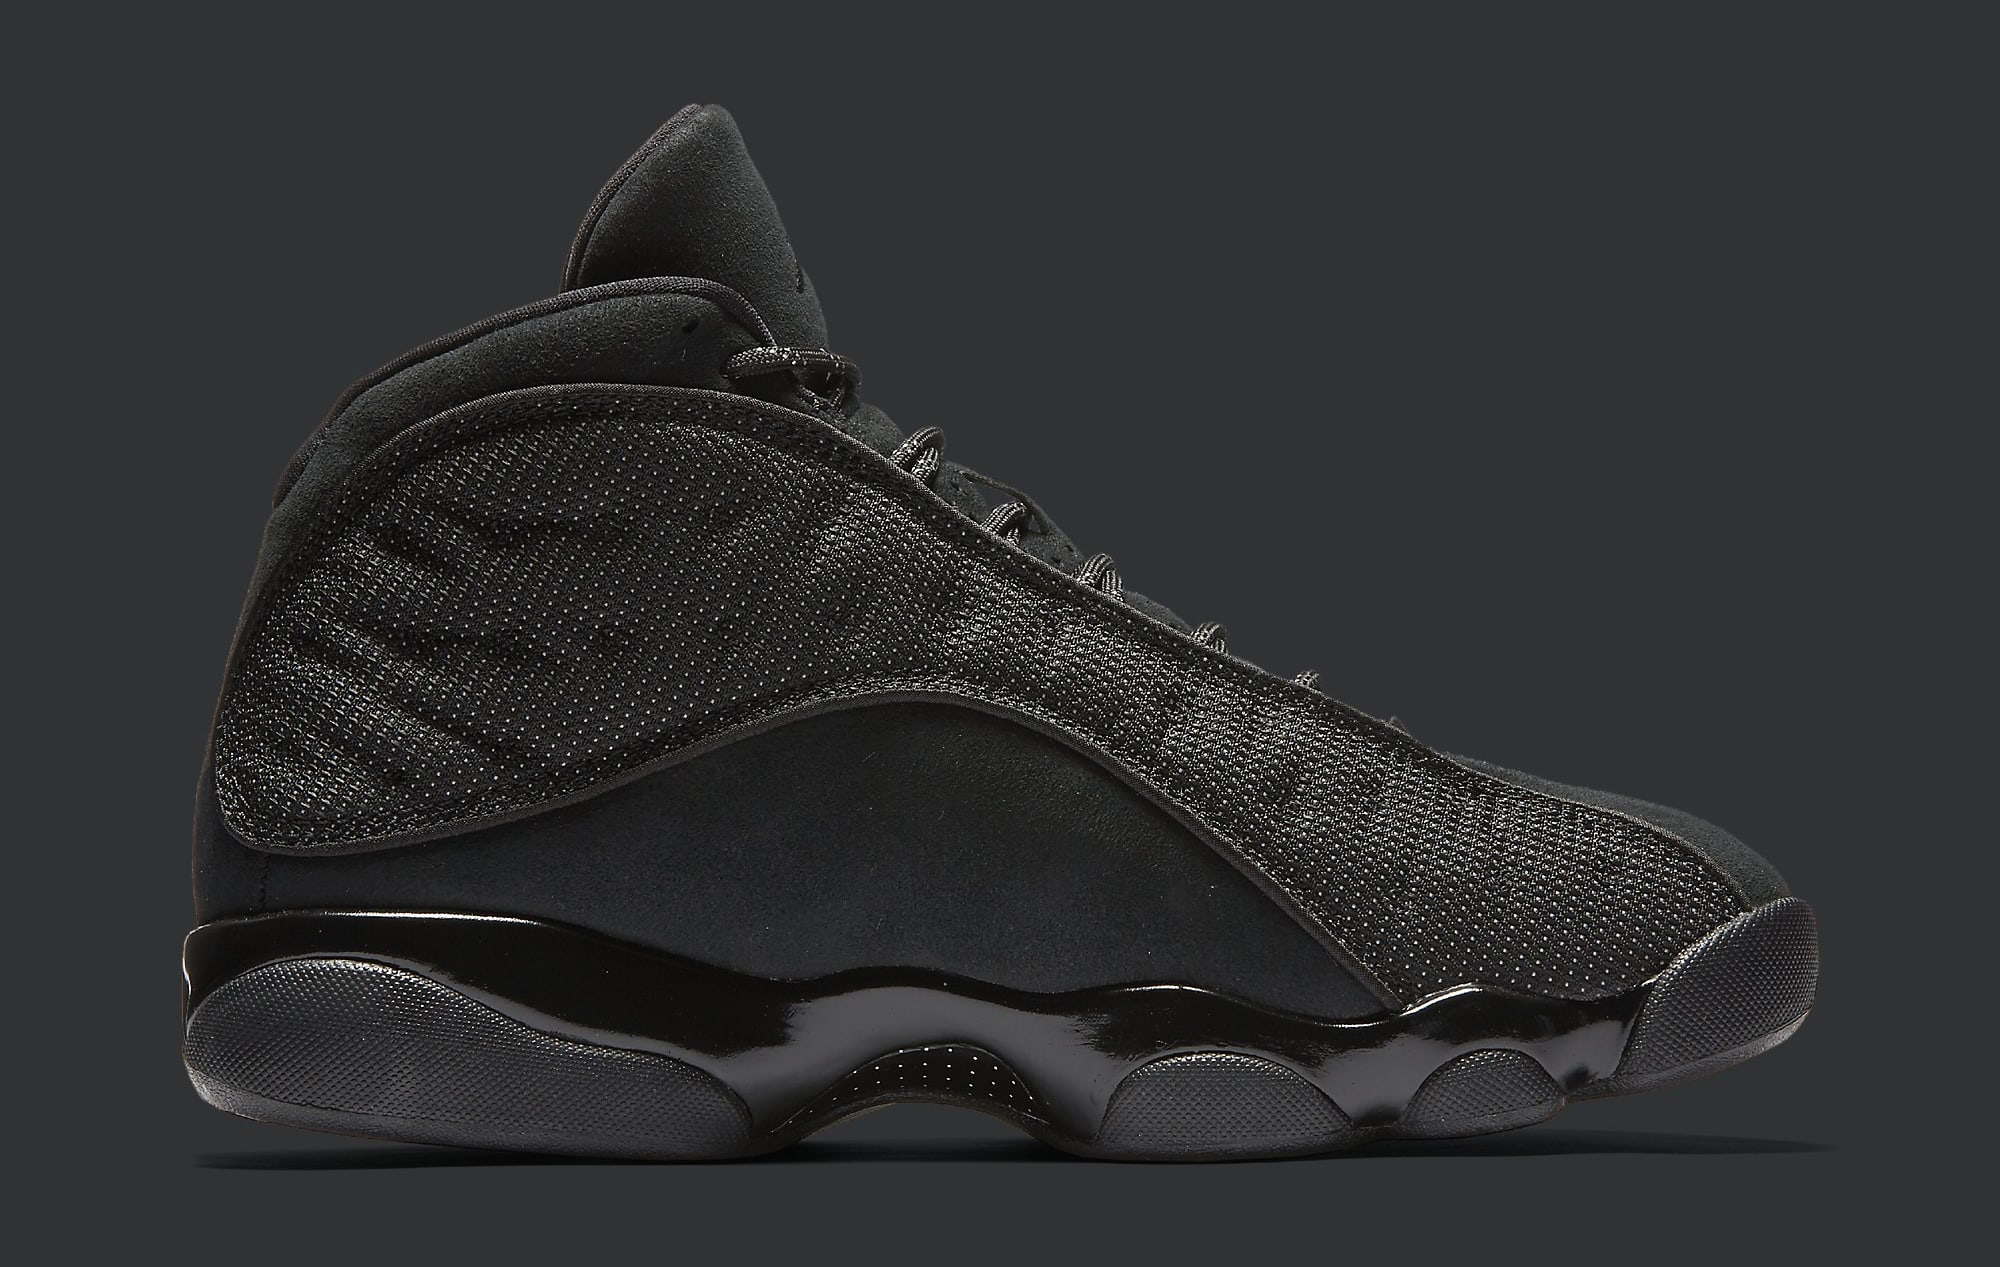 Black Cat Air Jordan 13 414571-011 Medial